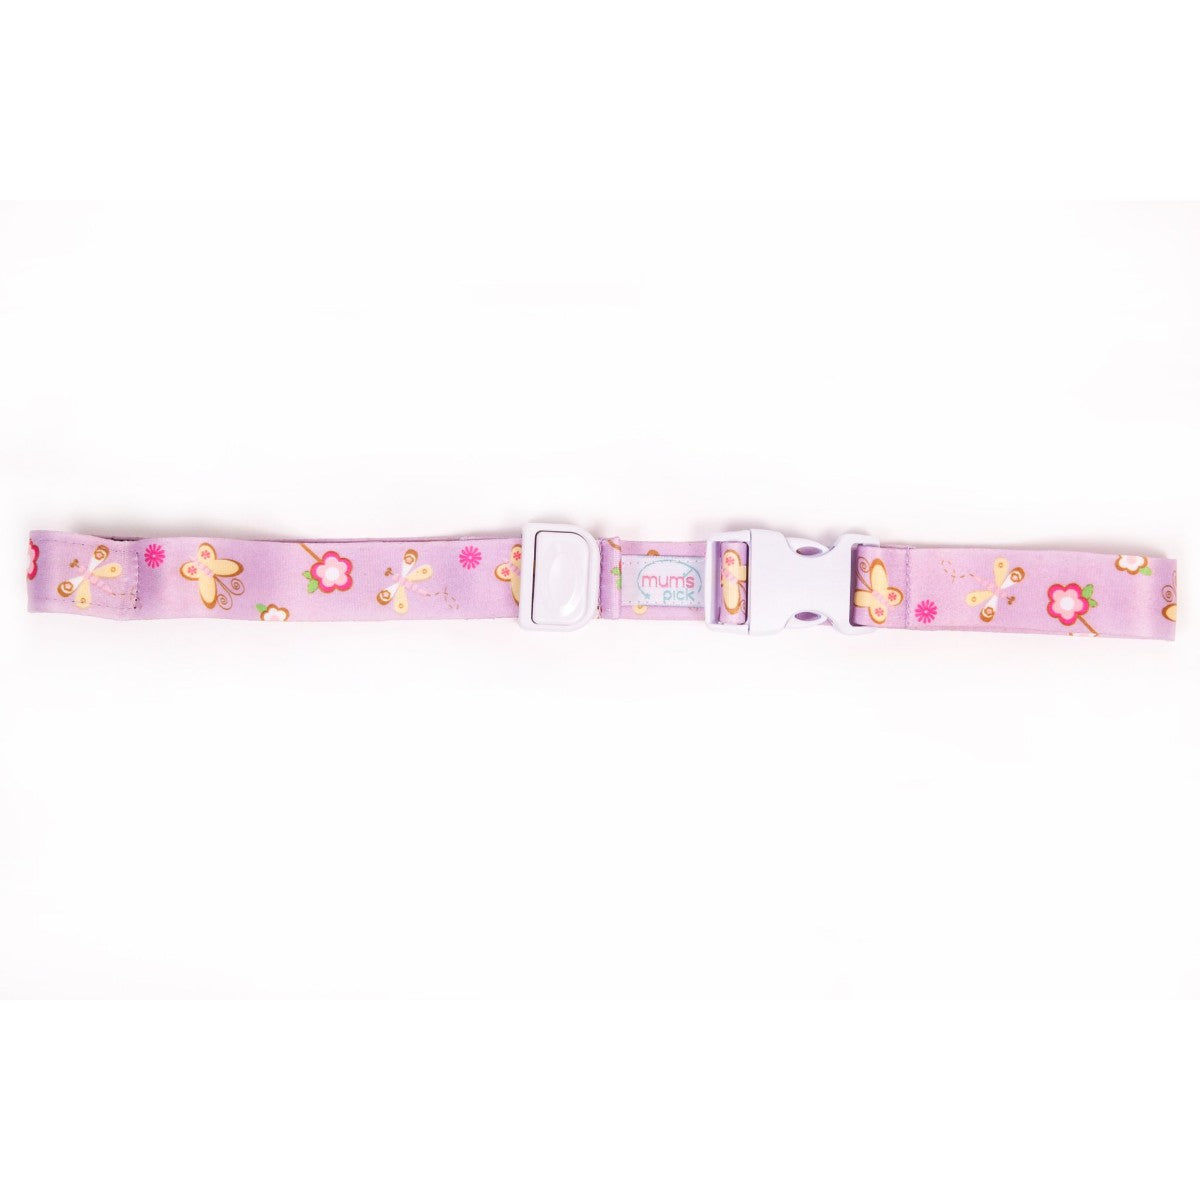 Mumspick Sippy leash Pink-NaturesWisdom